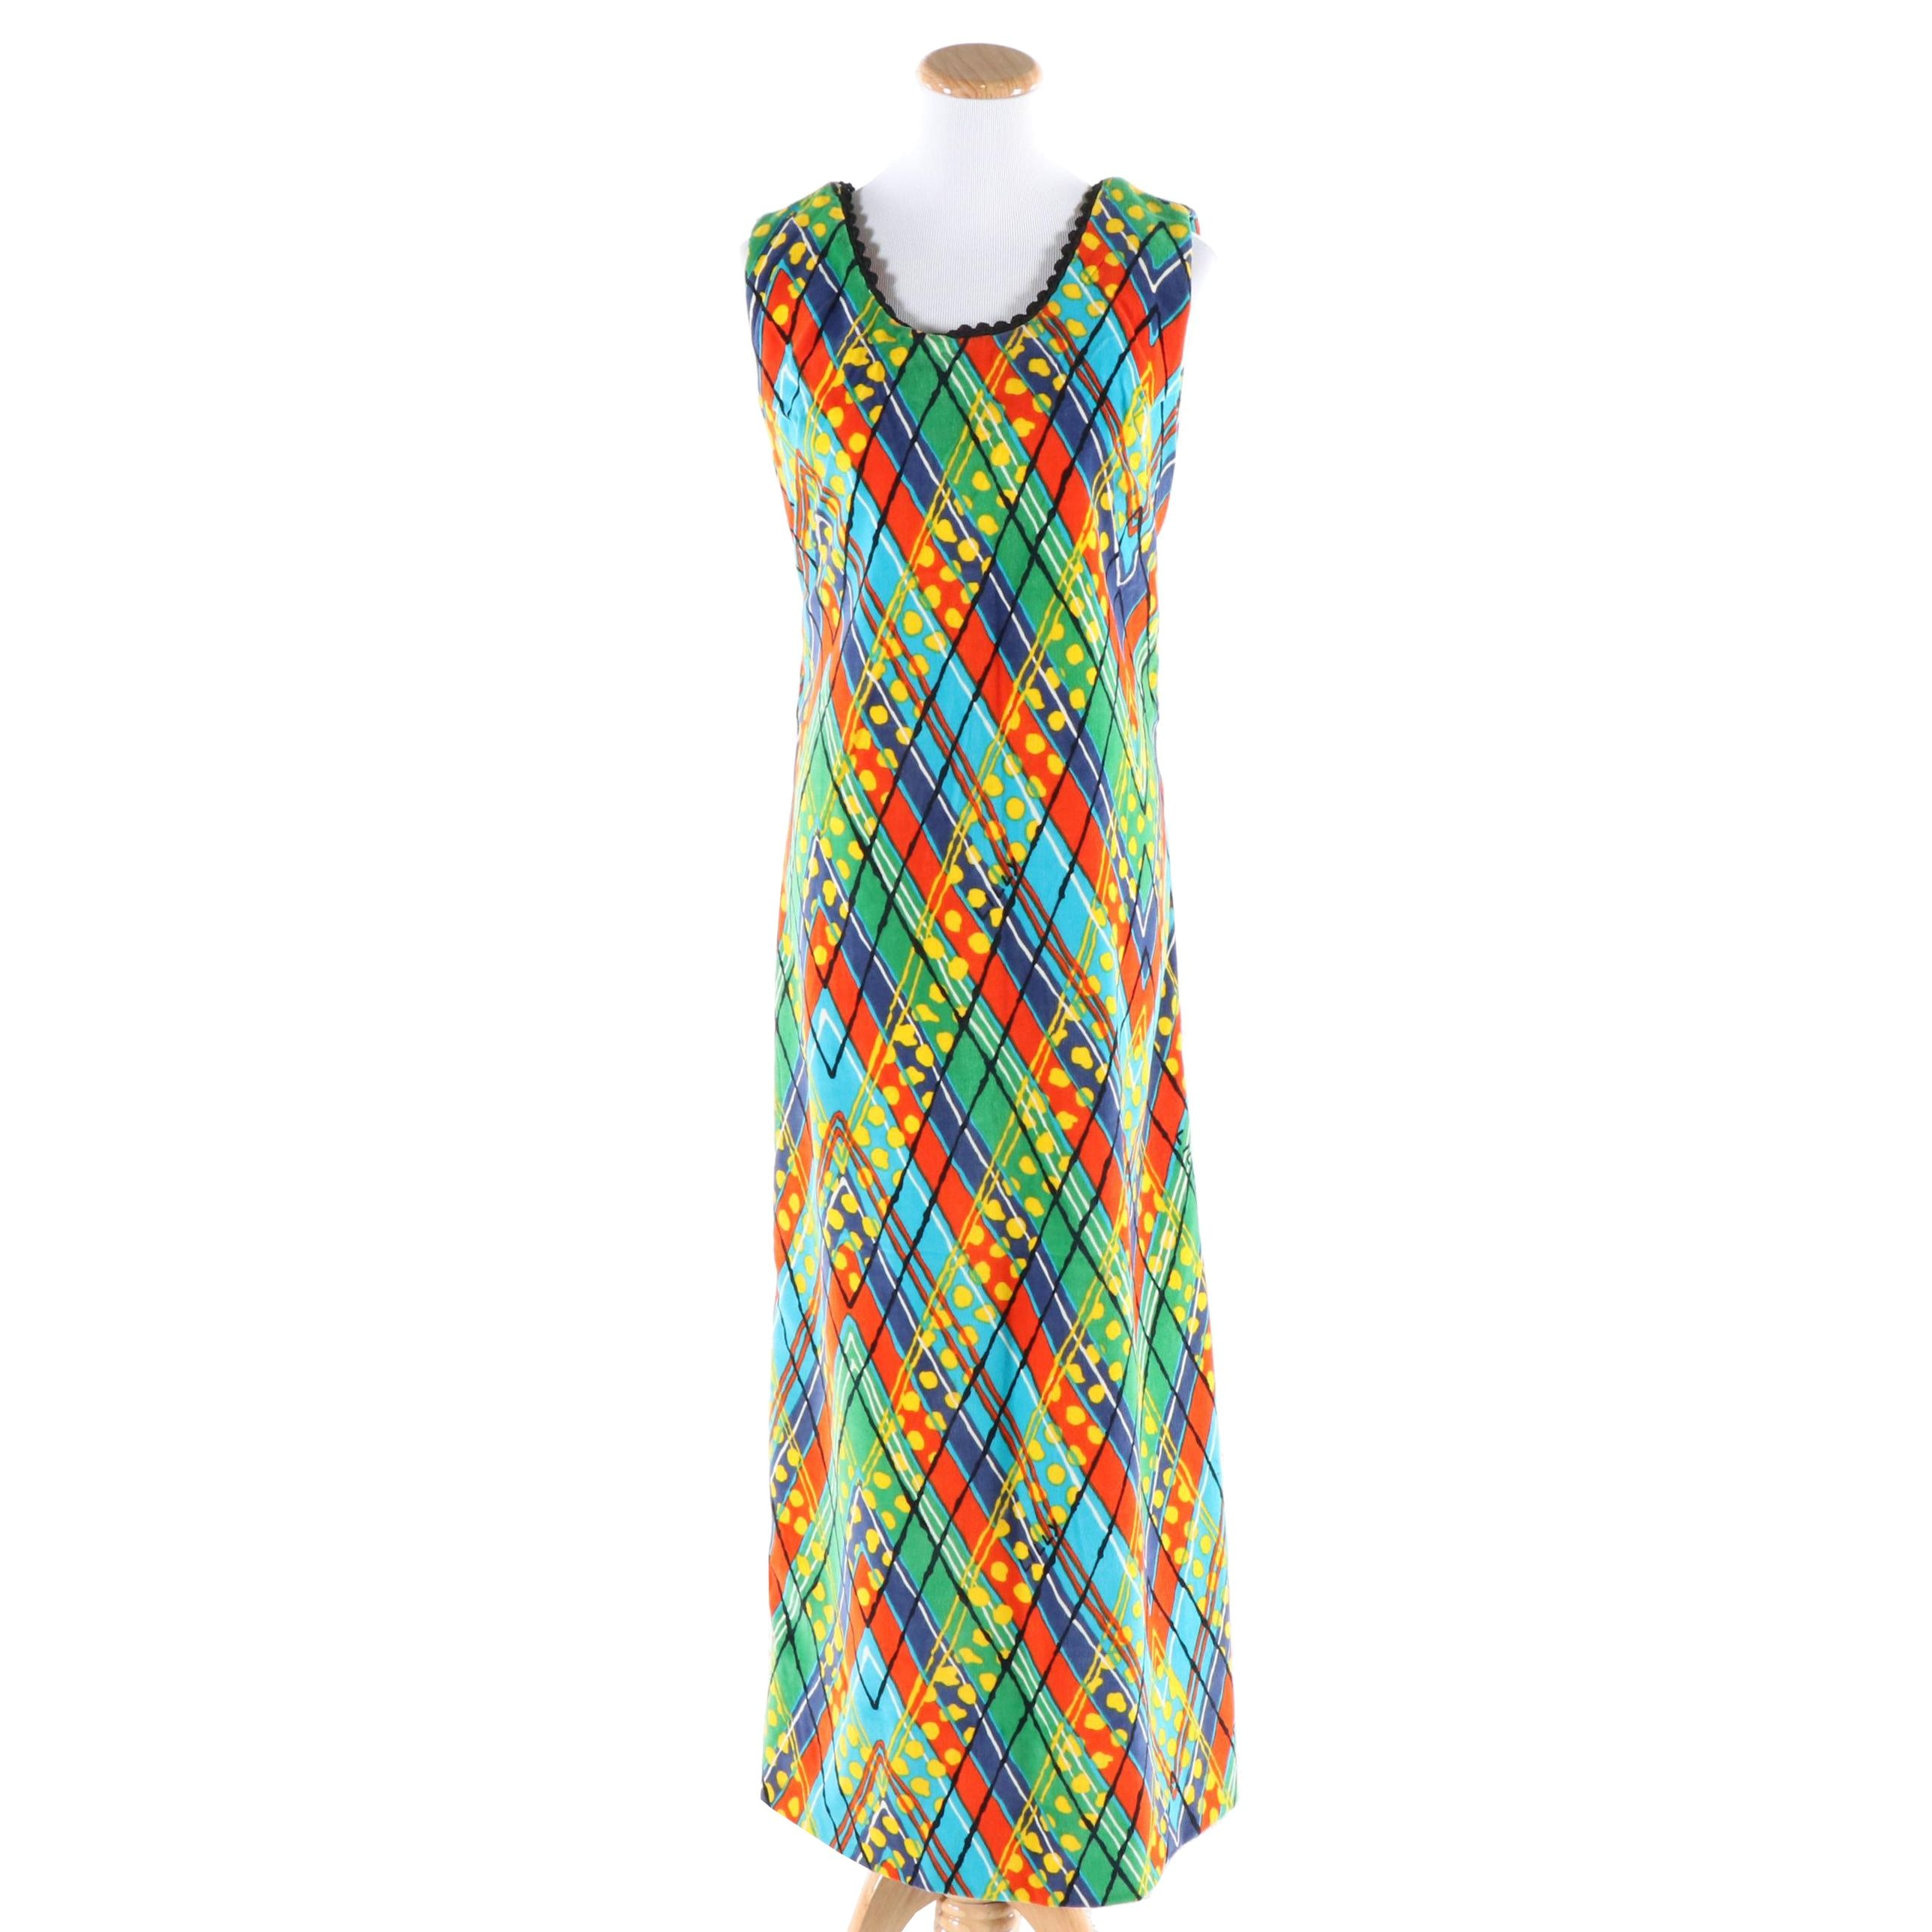 The Lilly Lilly Pulitzer Multicolored Sleeveless Maxi Dress, circa 1970